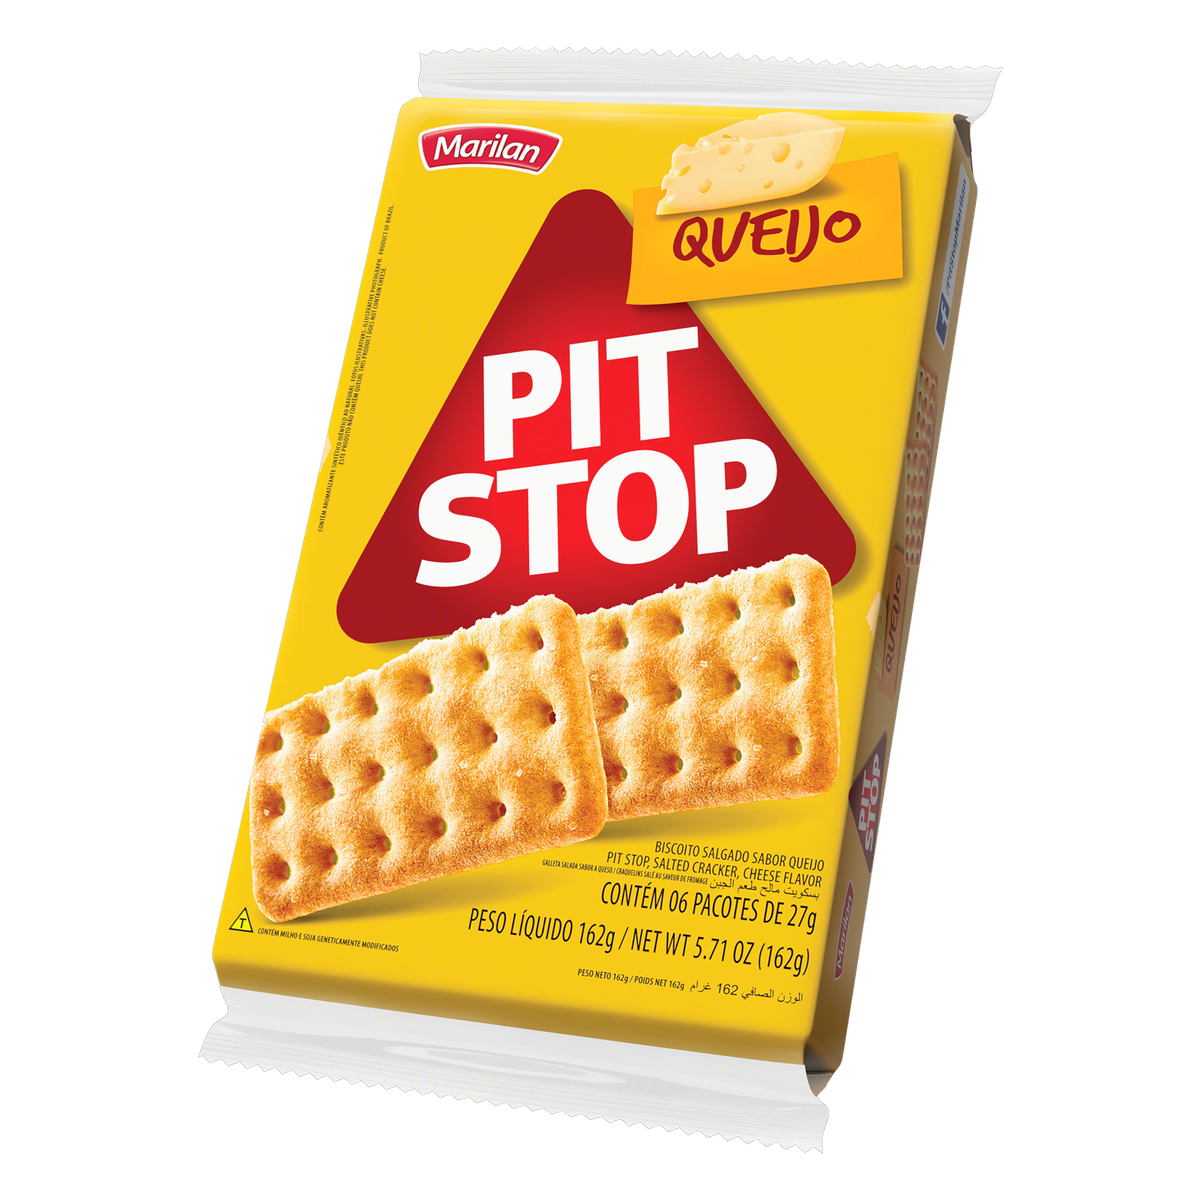 7896003706581 - PACK BISCOITO QUEIJO MARILAN PIT STOP PACOTE 162G 6 UNIDADES